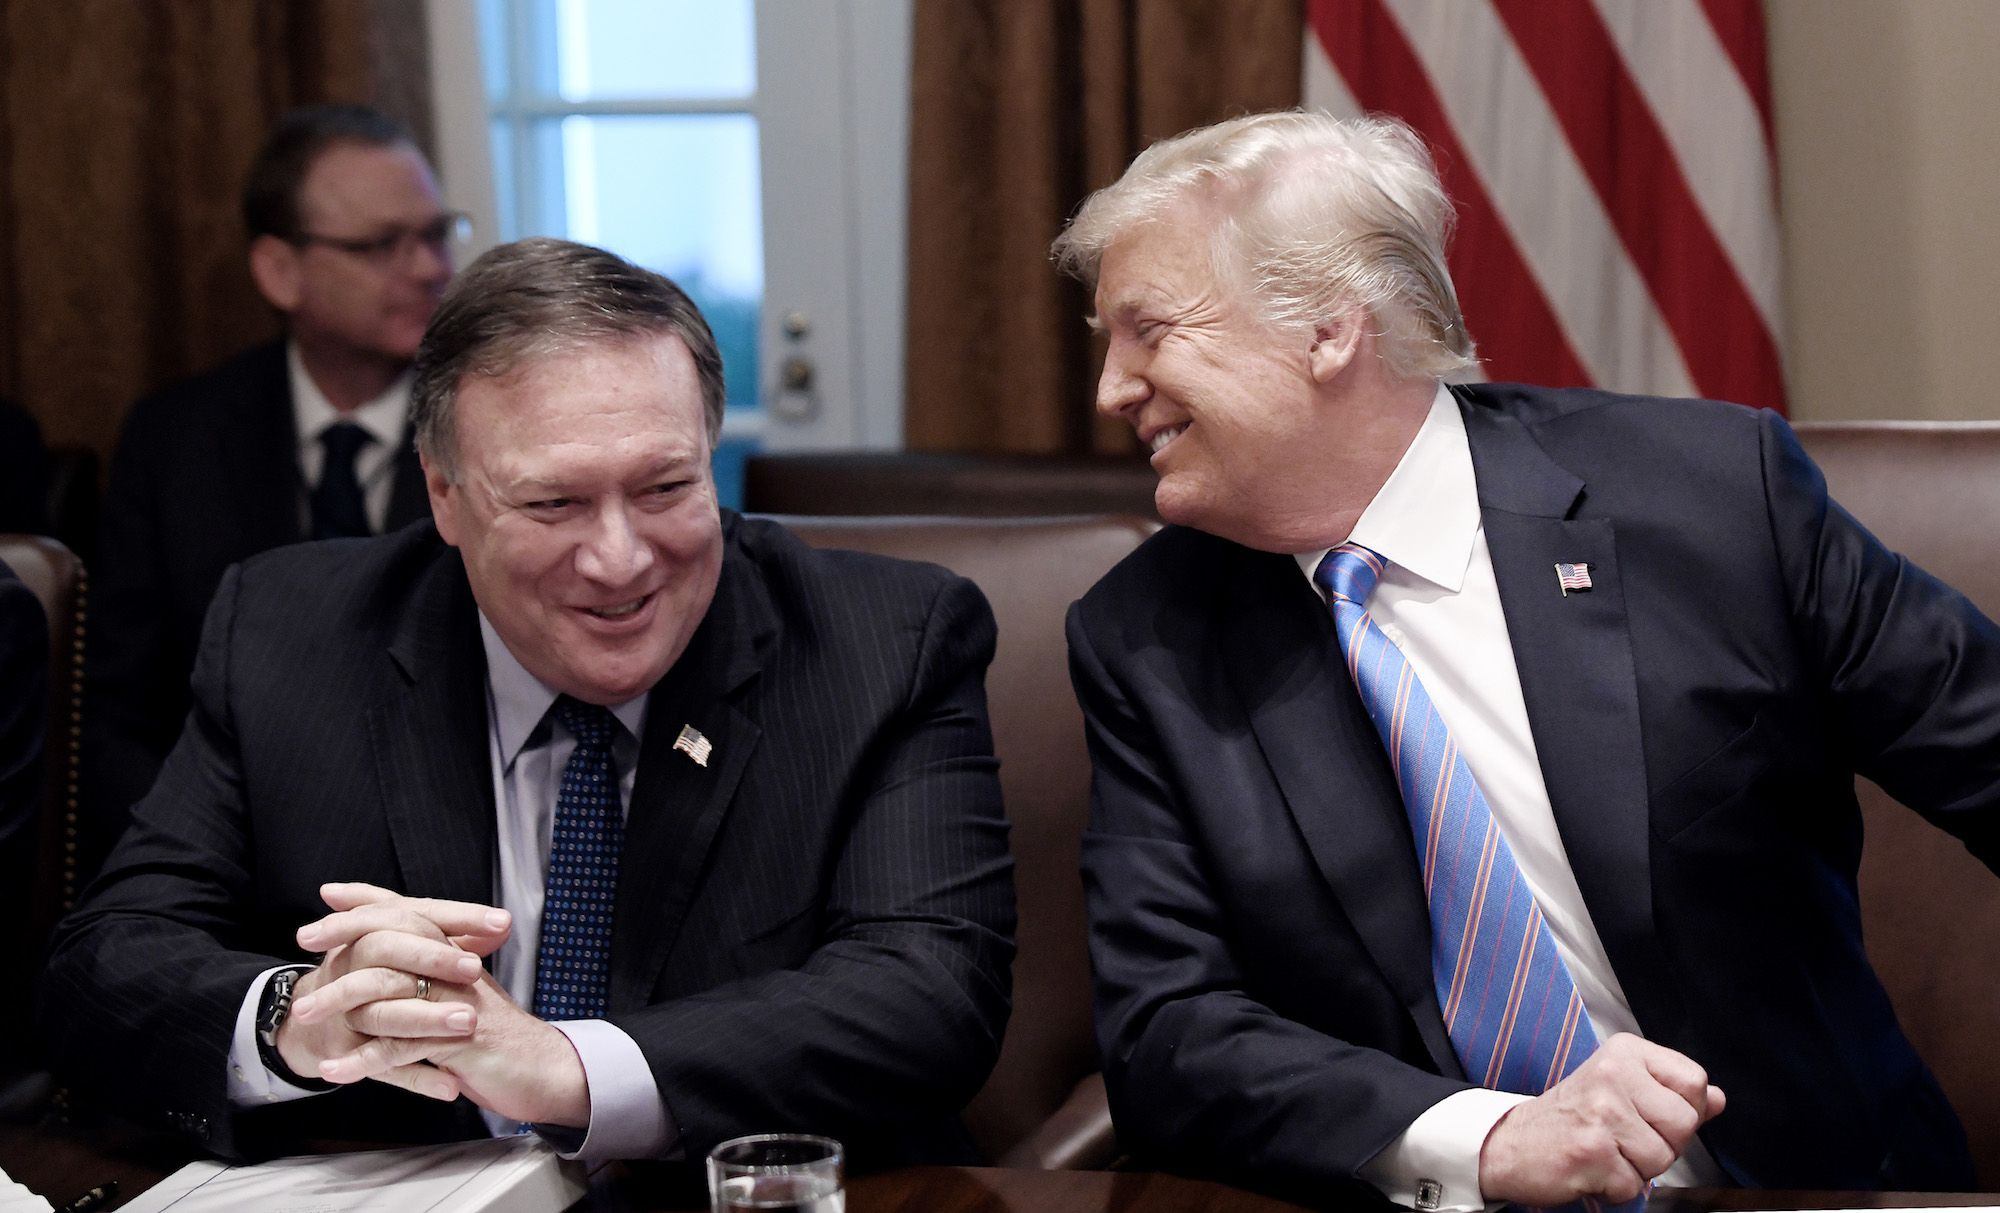 A New Look at Mike Pompeo's Career Reminds Us Trump Is an Inevitable Product of Republican Politics